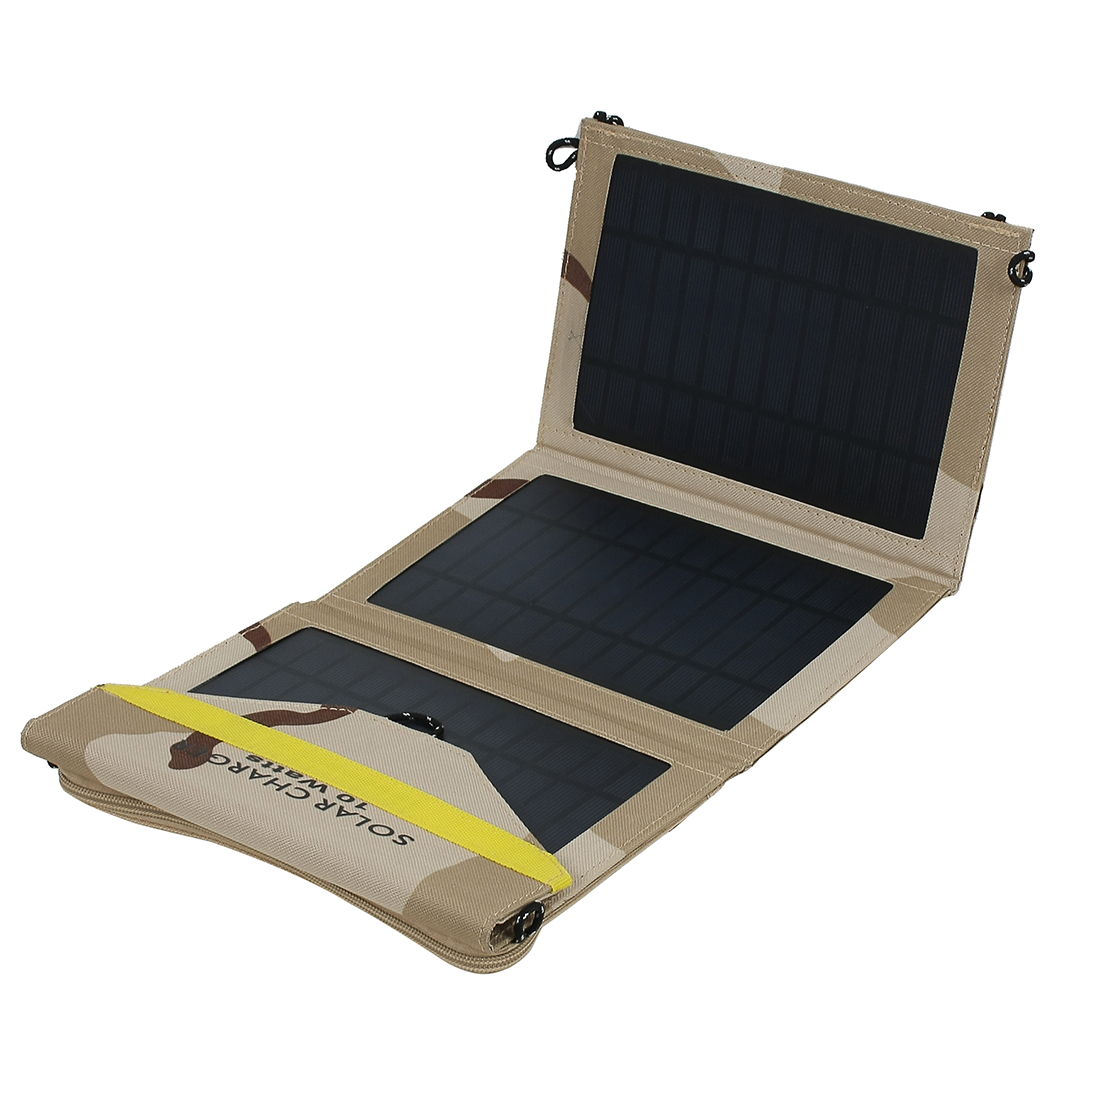 10W One Ports USB Foldable Solar Panel Charger for Smart Phone Portable Pad More Camouflage